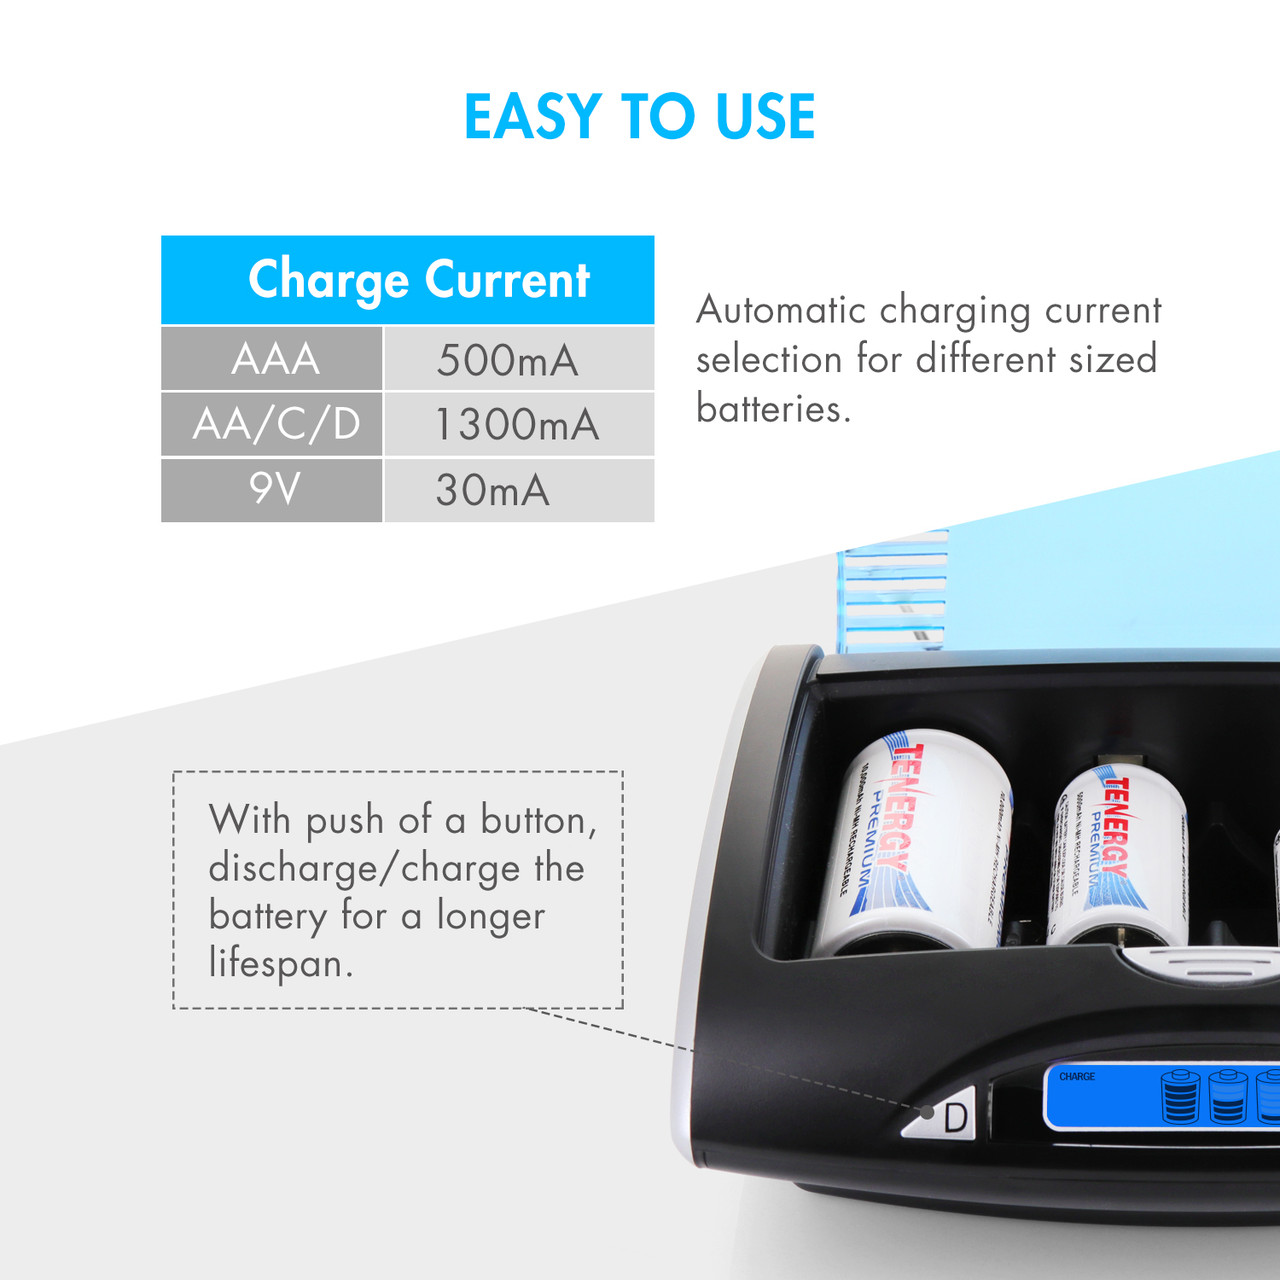 Combo: 4 Pack Tenergy Premium Rechargeable D Batteries + T9688 LCD Smart Battery Charger for NIMH/NICD AA/AAA/C/D/9V Batteries